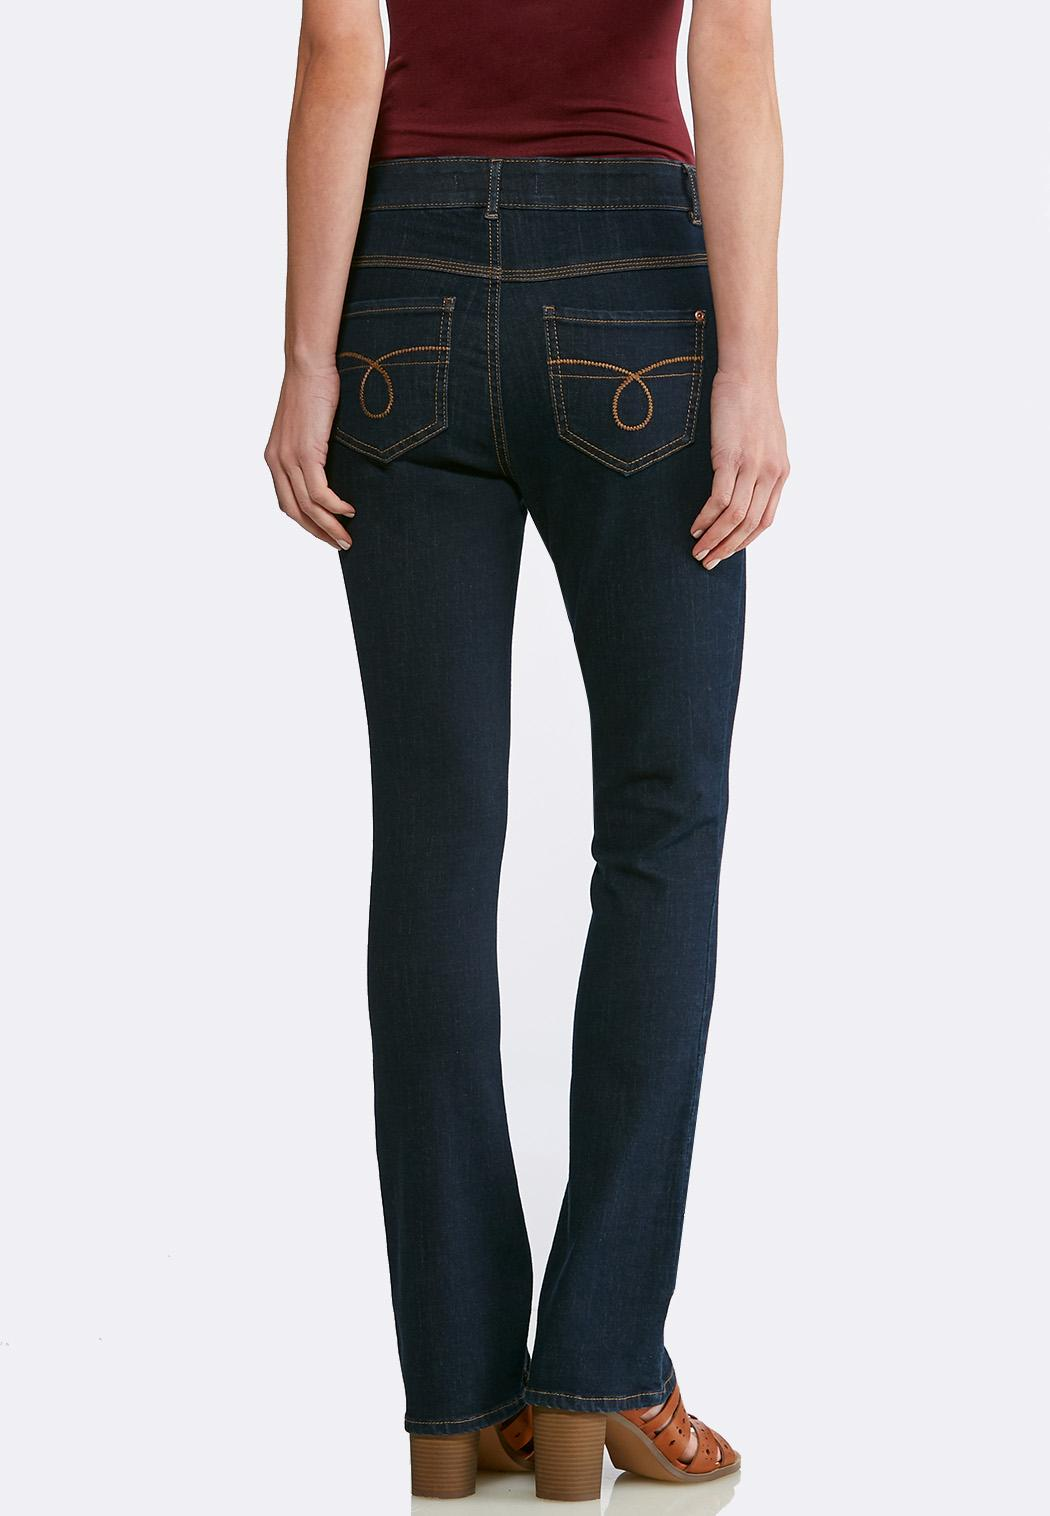 Dark Wash Bootcut Jeans (Item #43639193)